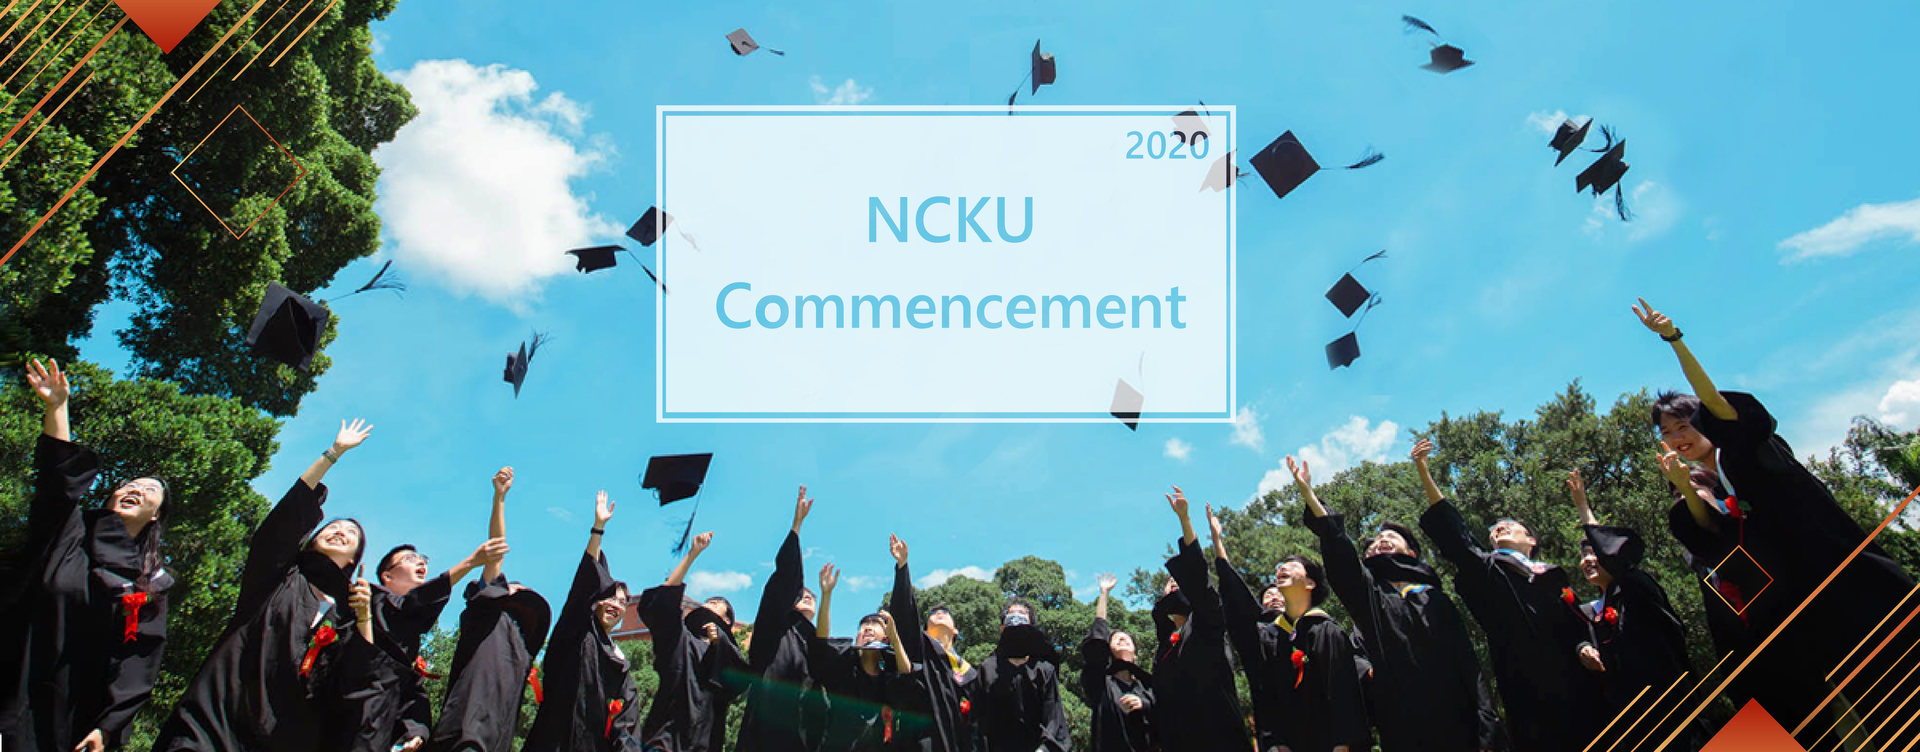 NCKU Commencement 2020: Soaring High and Composing a New Life Story